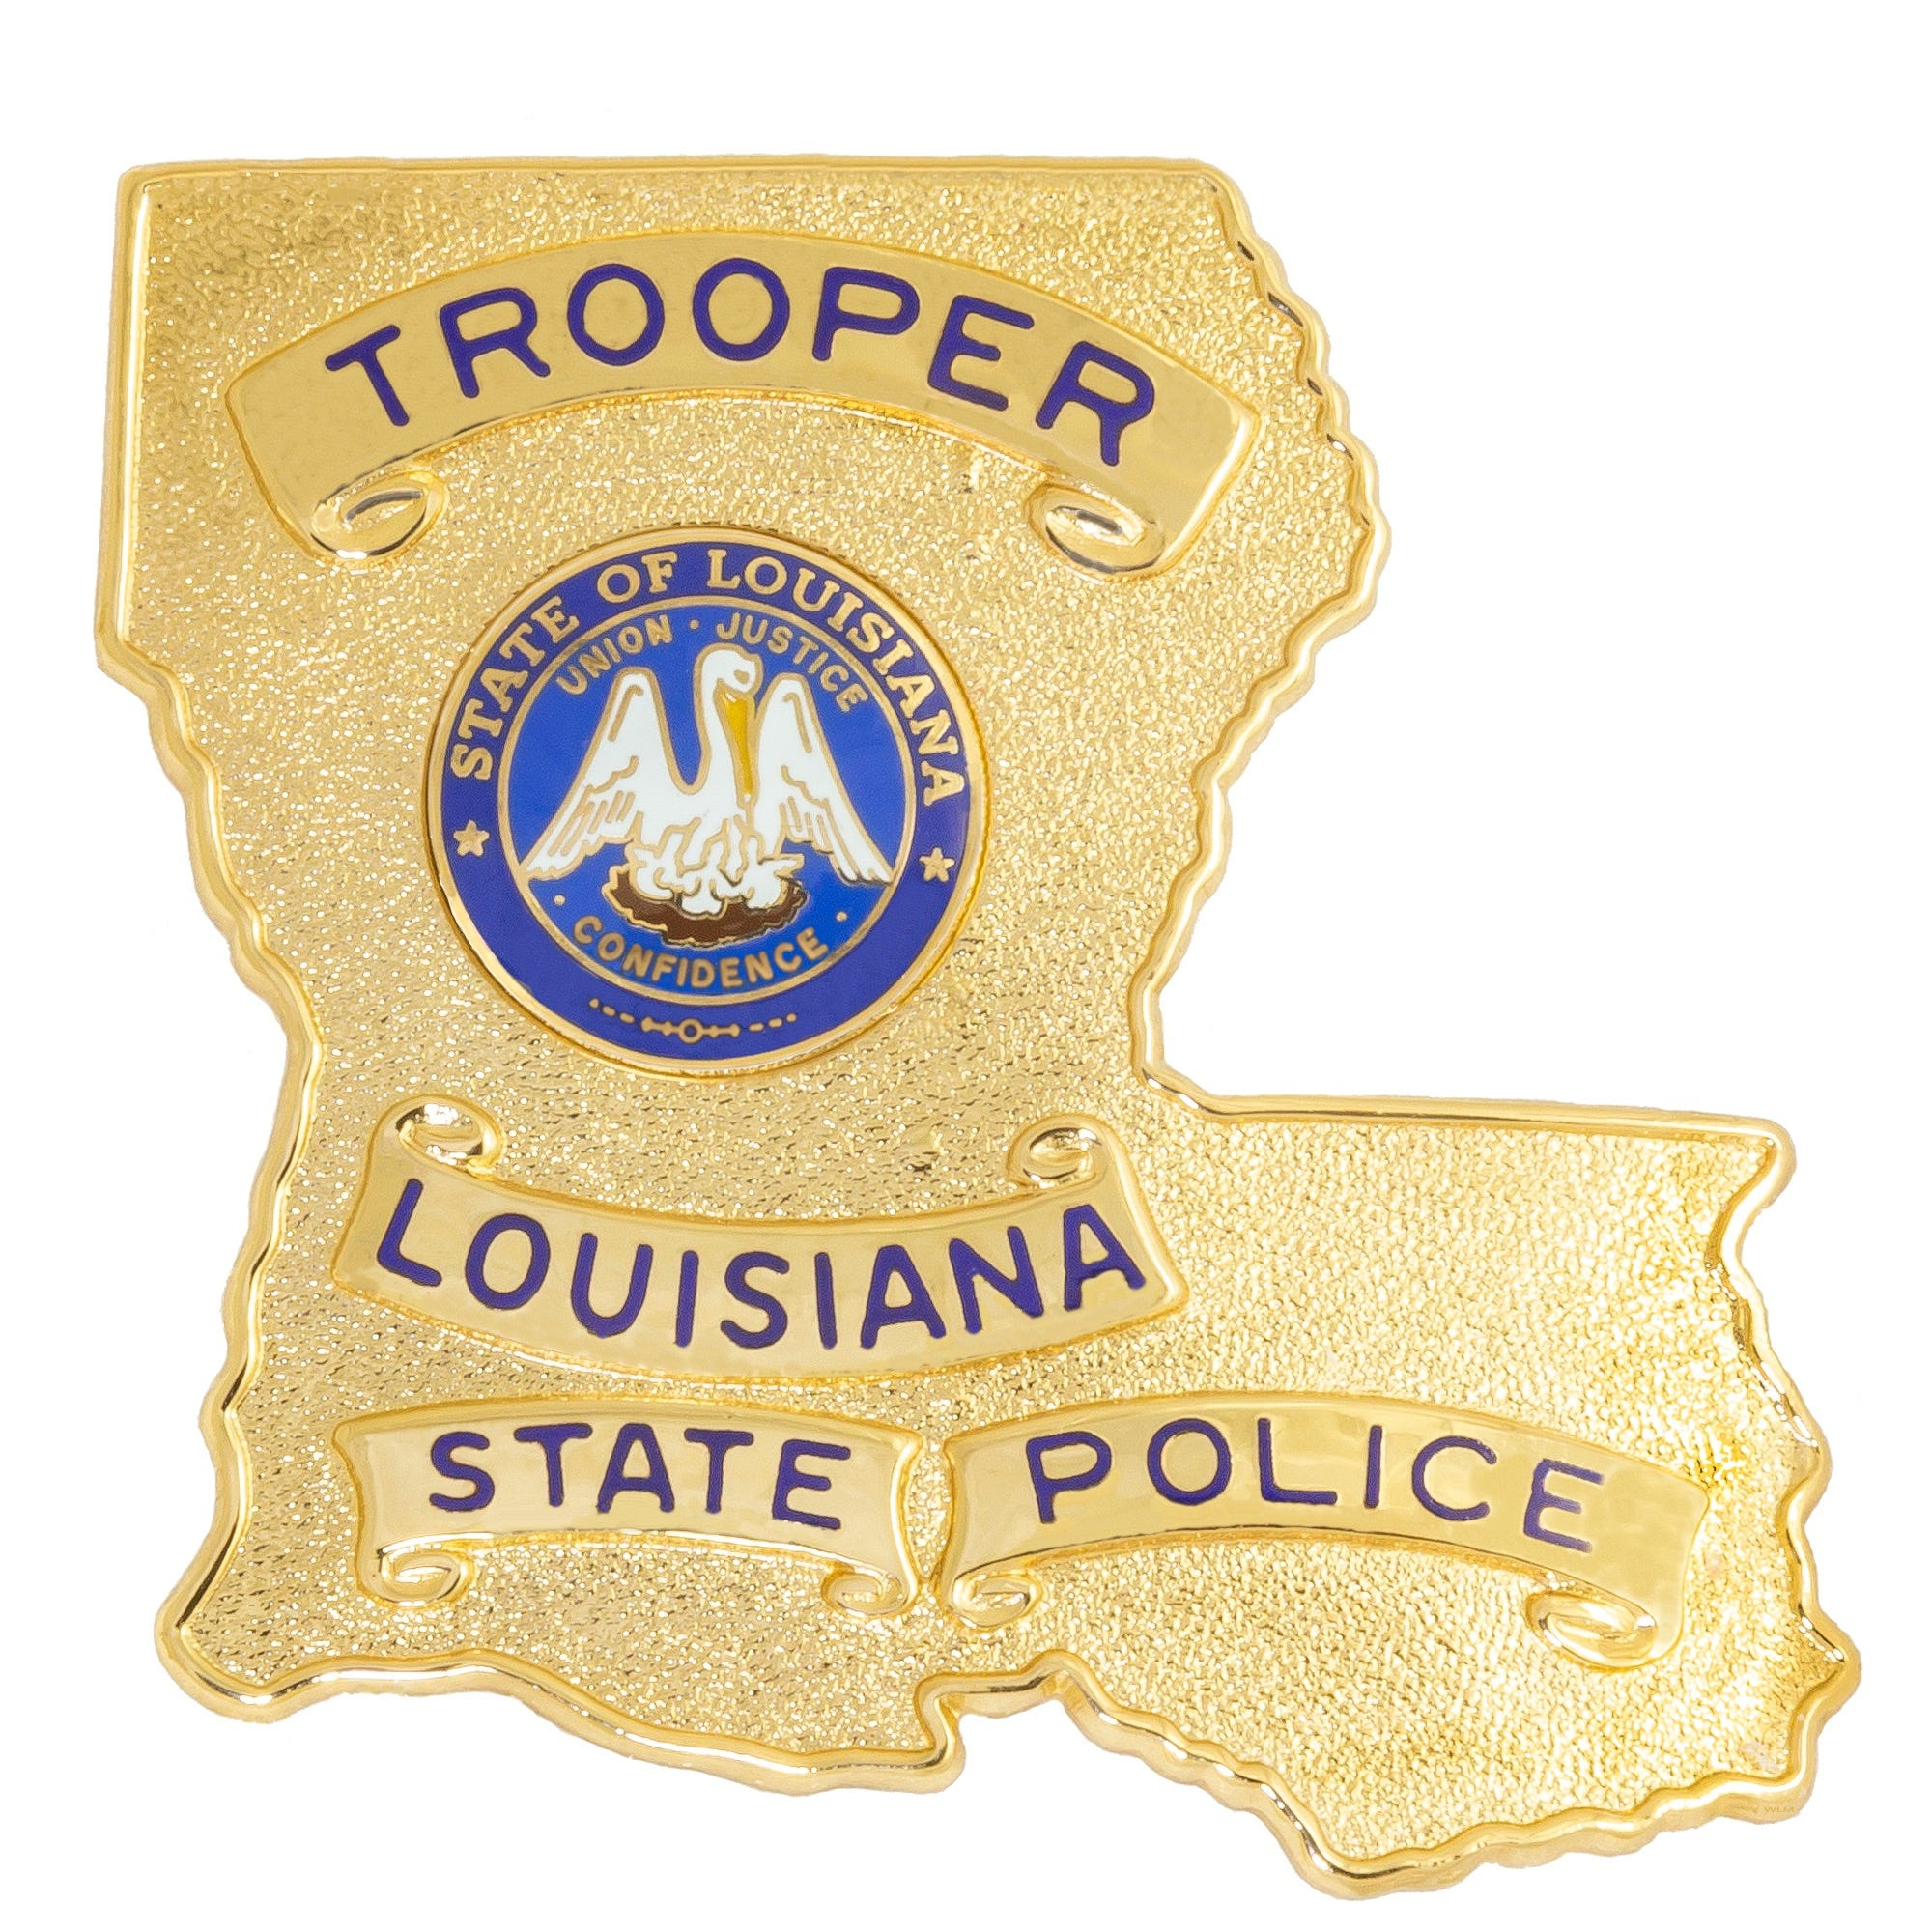 Unrestrained child dies in Richland Parish crash